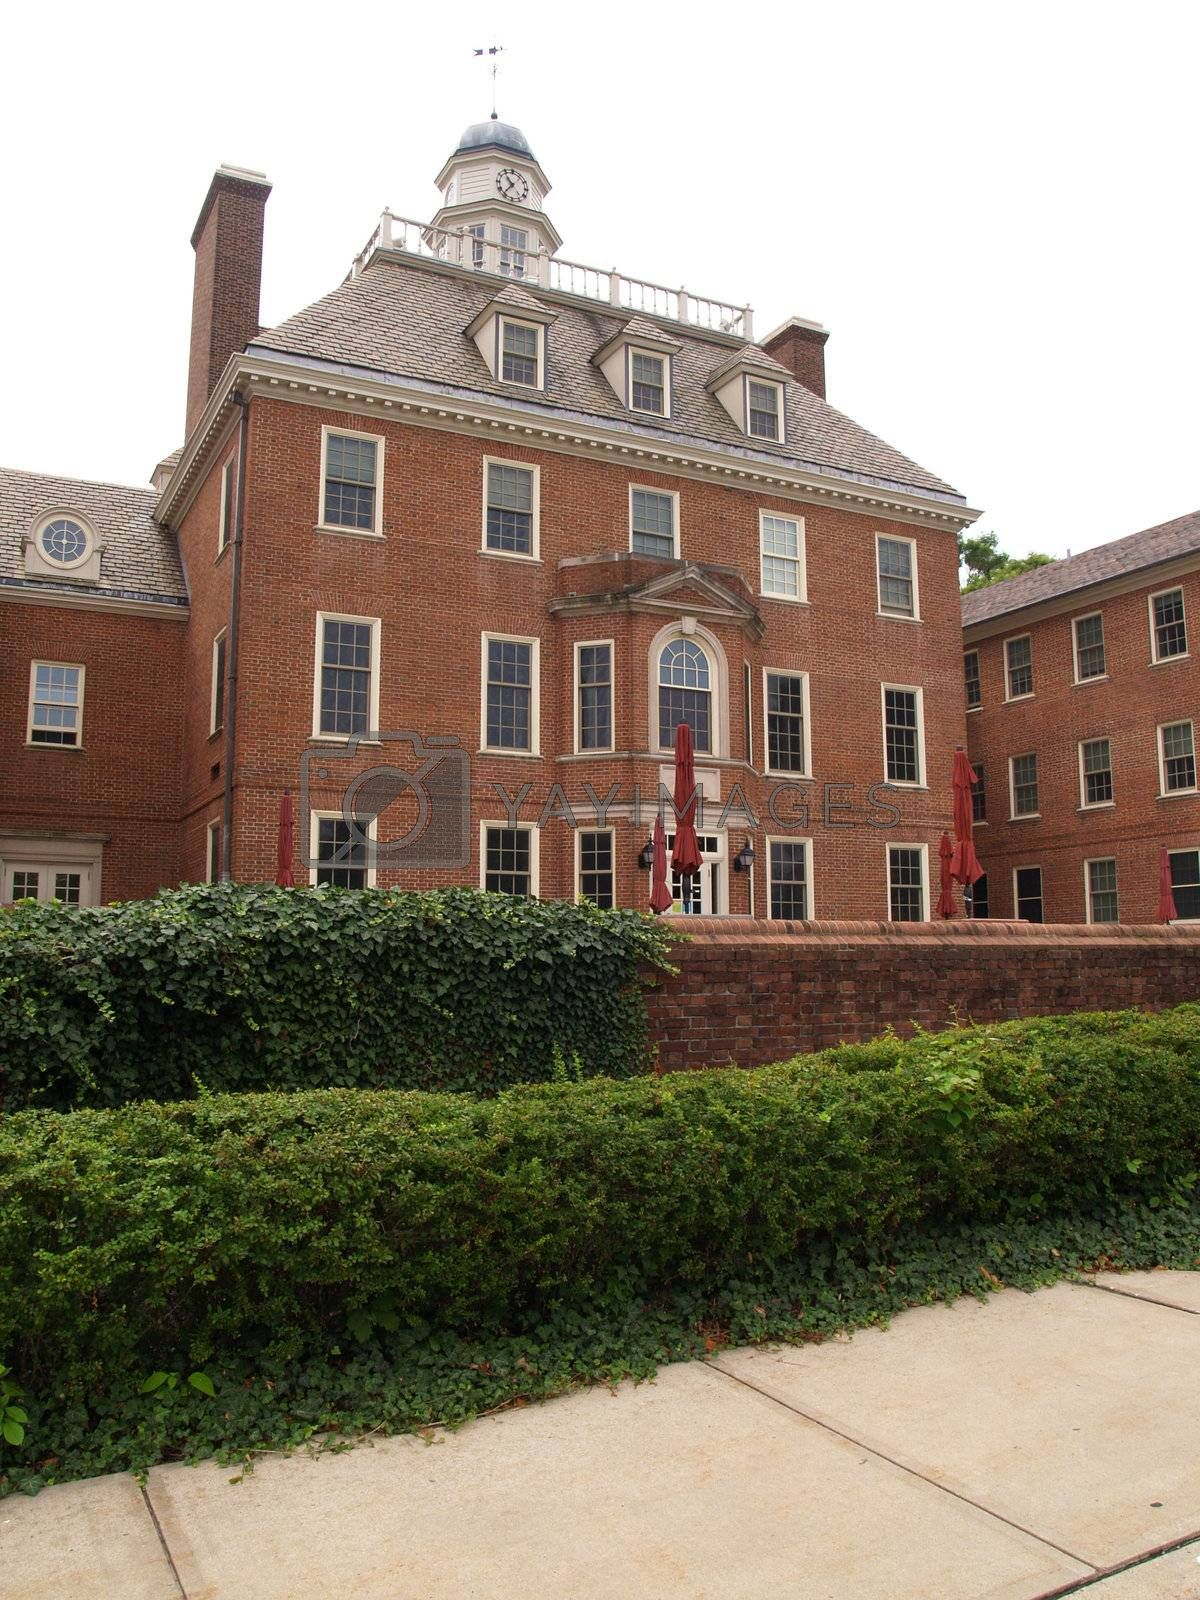 colonial style red brick building with brick wall and ivy